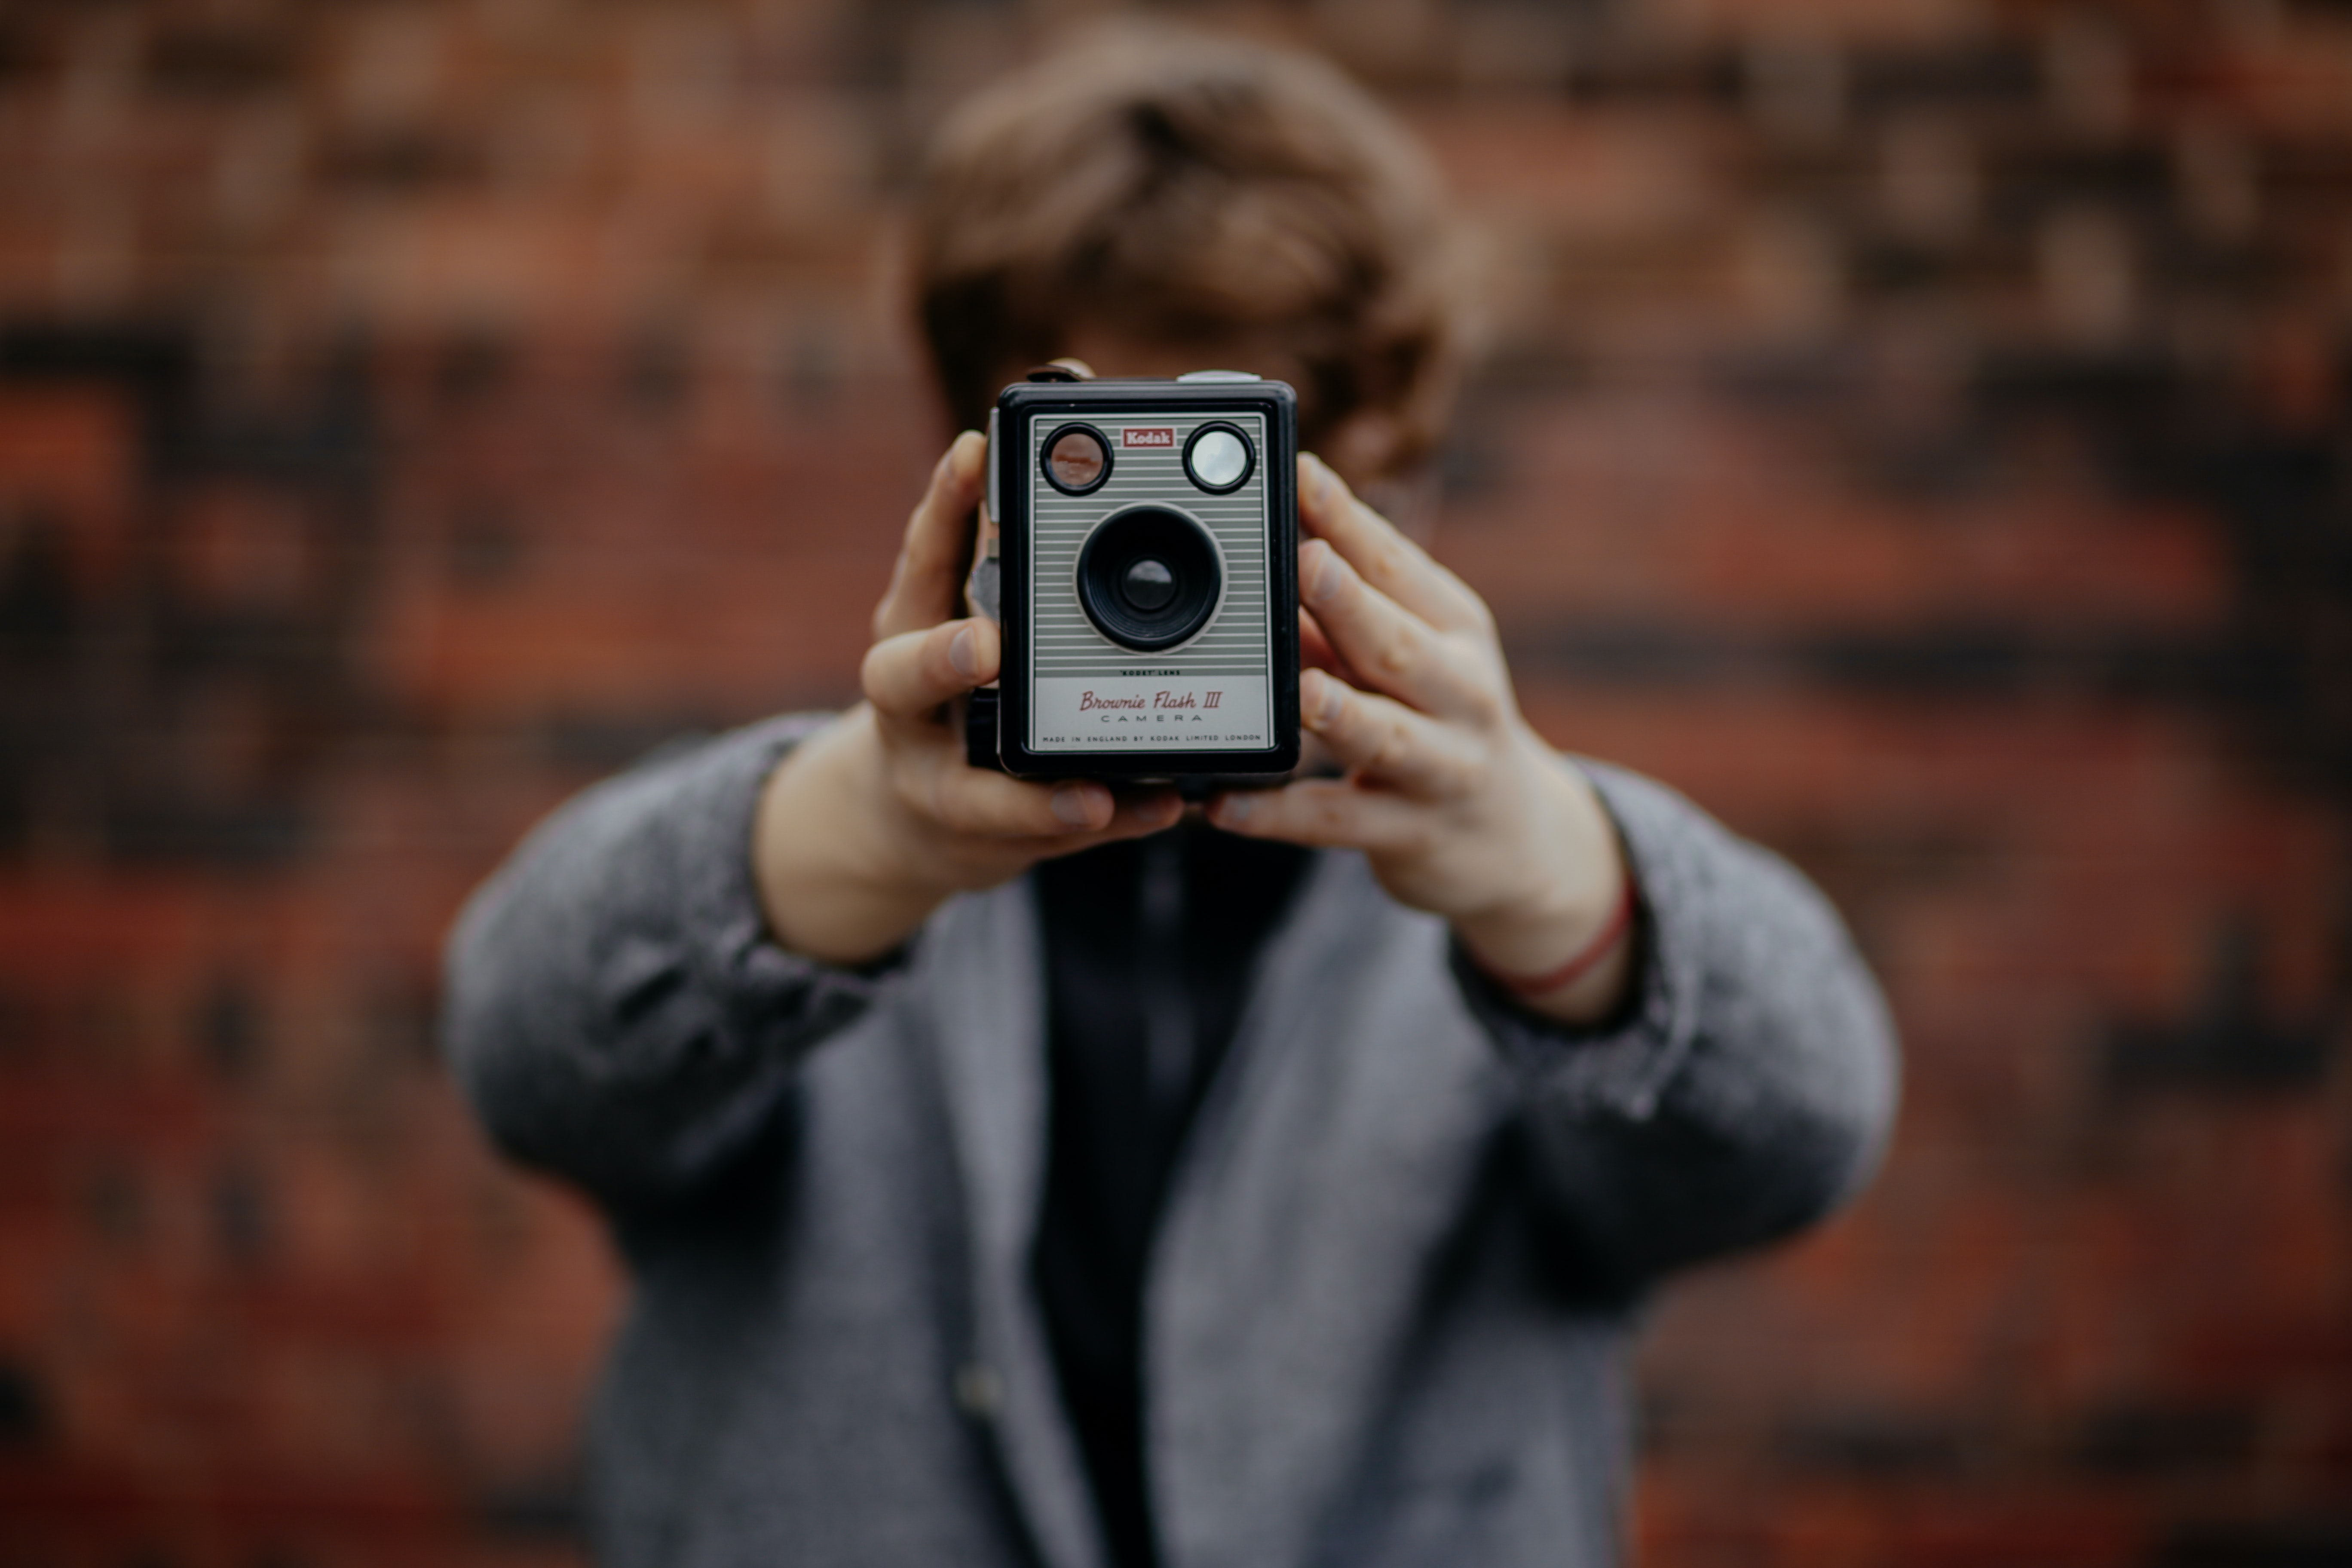 A person with short brown hair and a gray sweater taking a selfie with a vintage Kodak camera covering his face